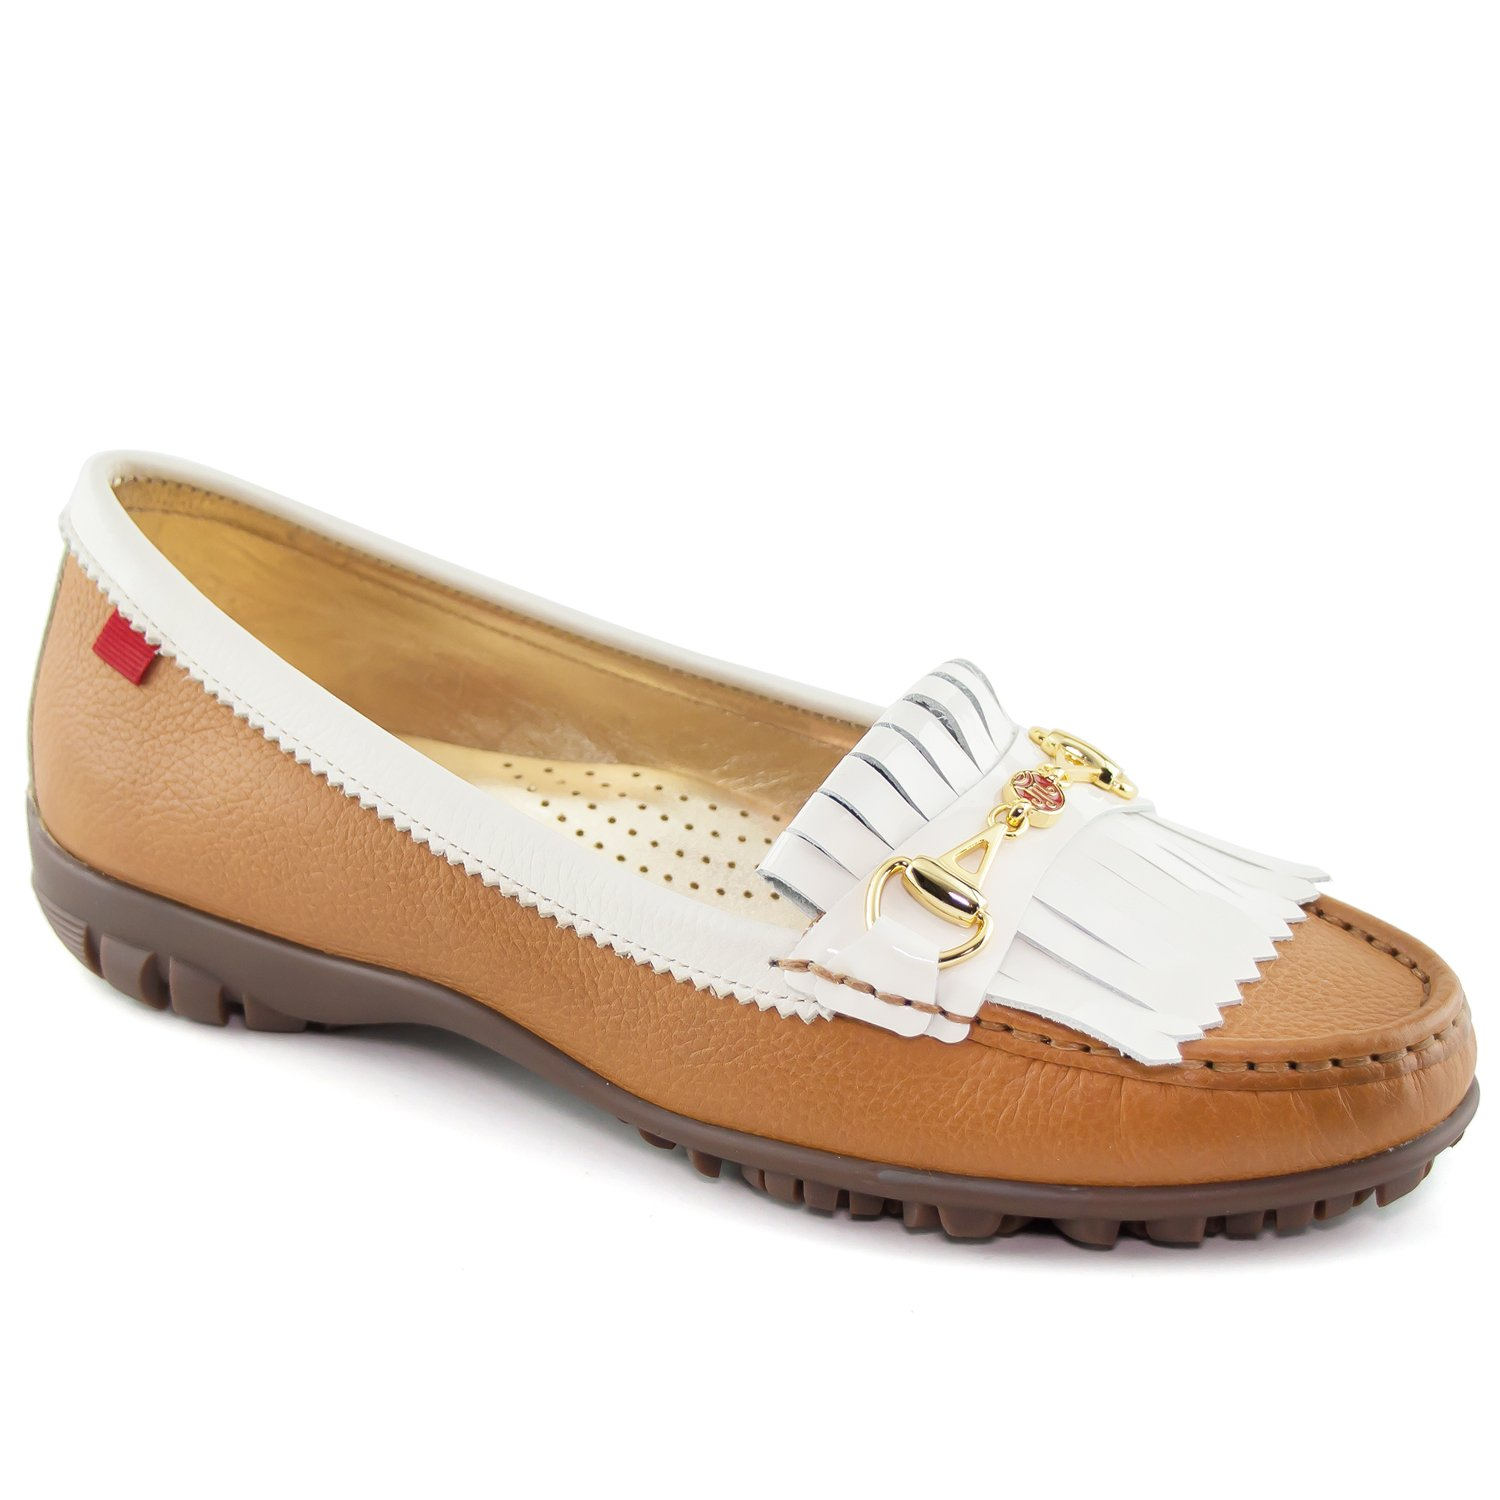 Marc Joseph New York Women's Fashion Shoes Lexington Golf Tan Grainy With Patent Kilt Moccassin Size 9 by Marc Joseph New York